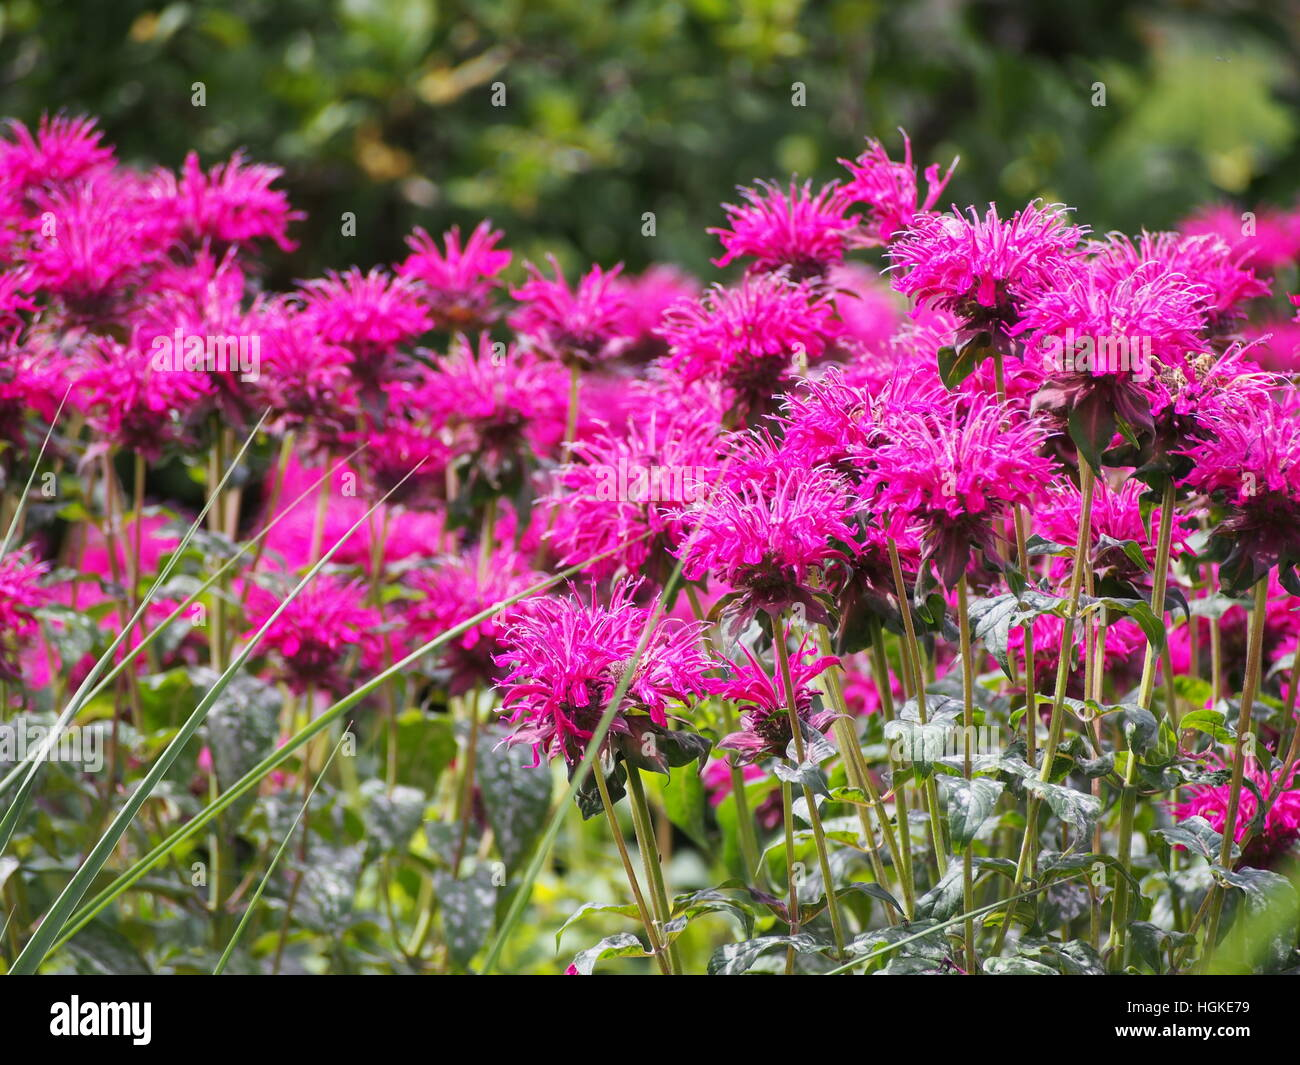 Monarda (bee balm, horsemint, oswego tea, bergamot) in full bloom Stock Photo